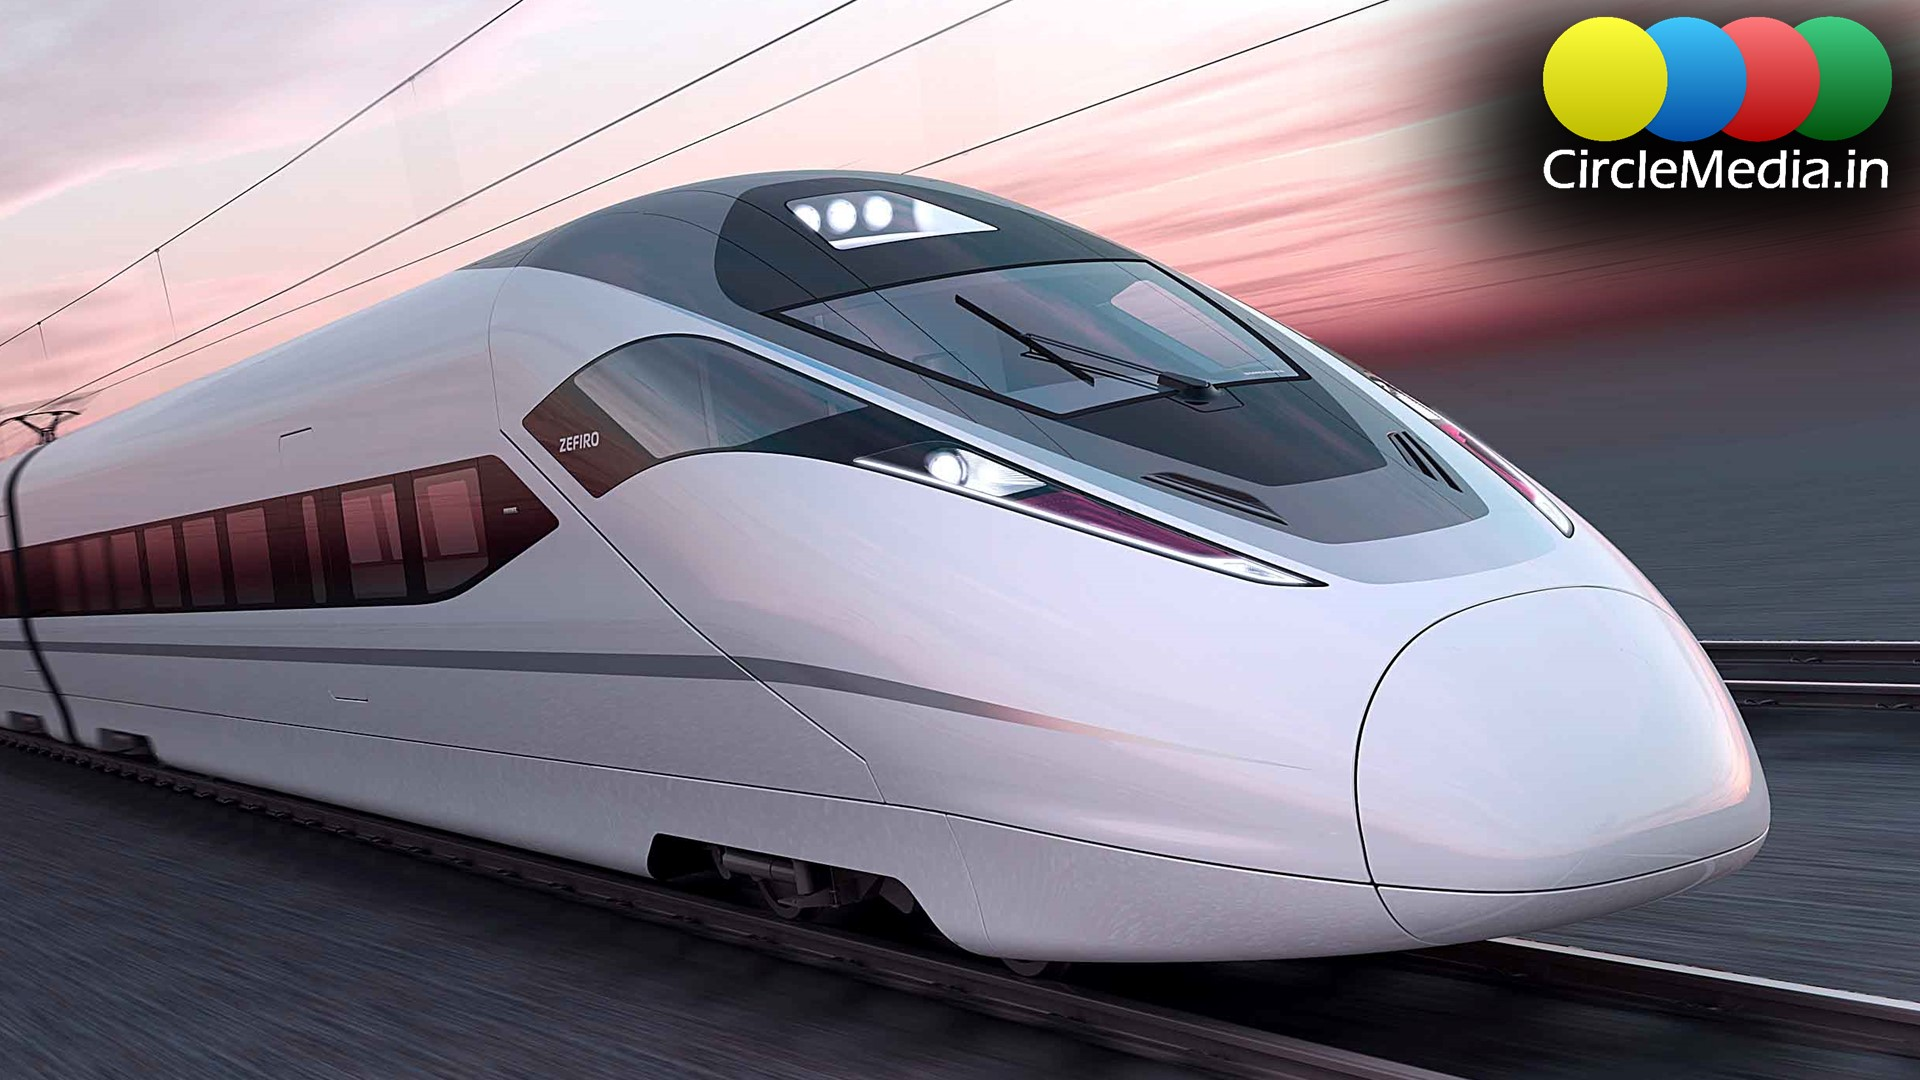 Top 10 Fastest Trains in the World